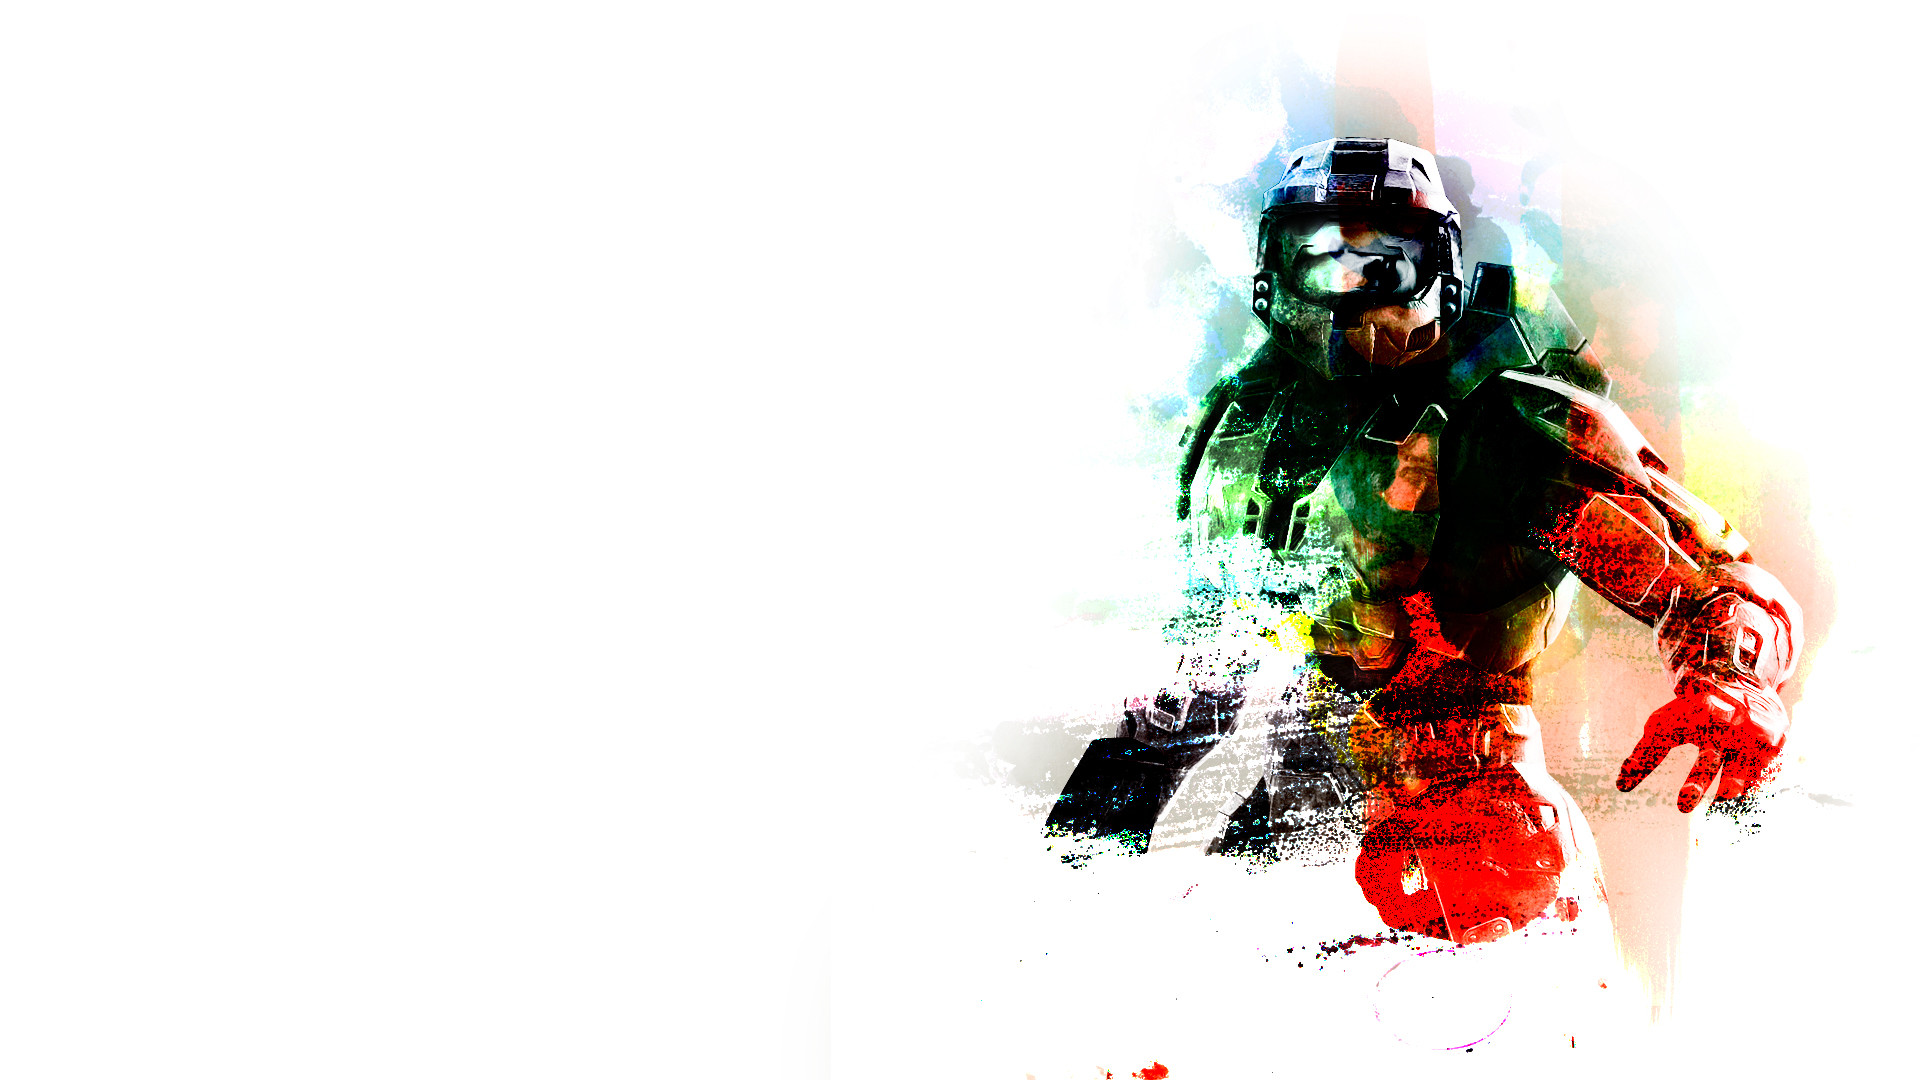 1920x1080 Halo Master Chief HD desktop wallpaper High Definition